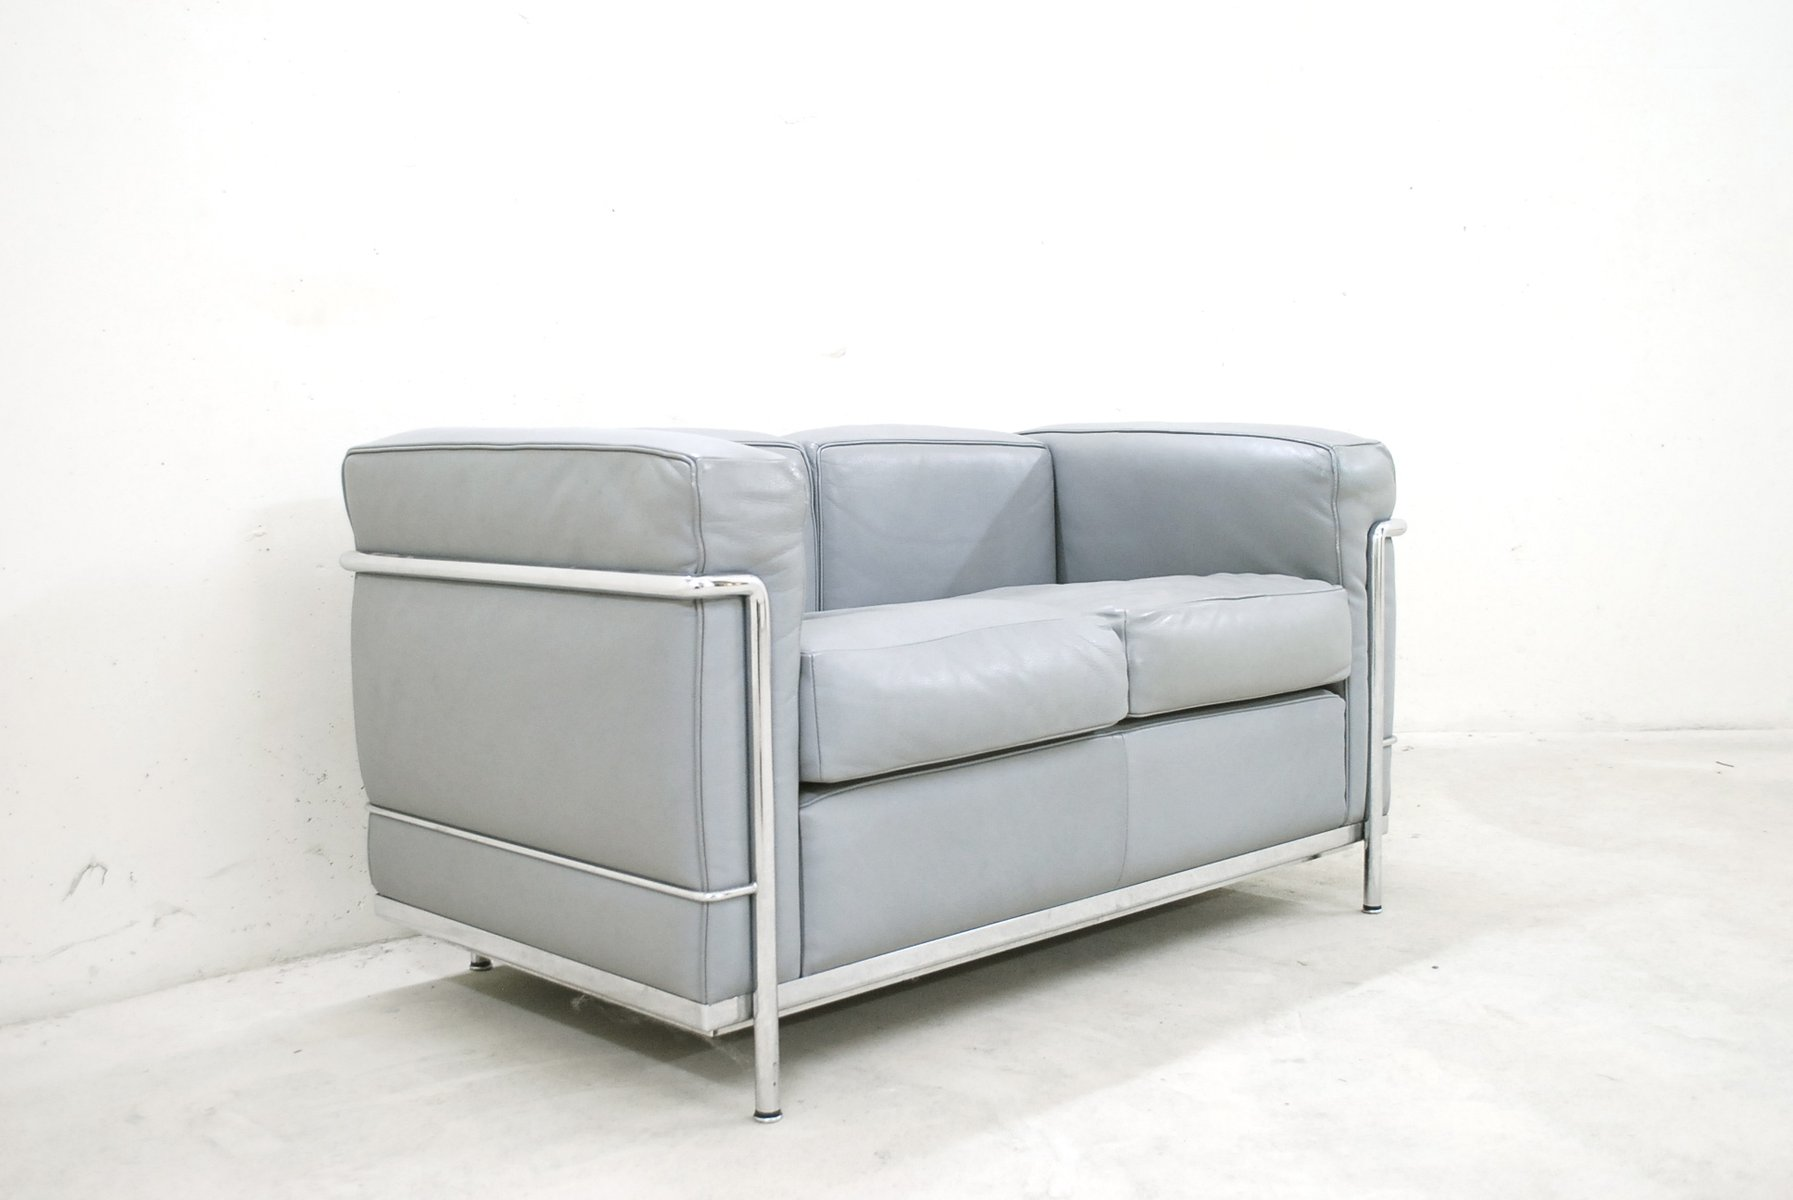 Model Lc2 Leather Sofa By Le Corbusier For Cina 1985